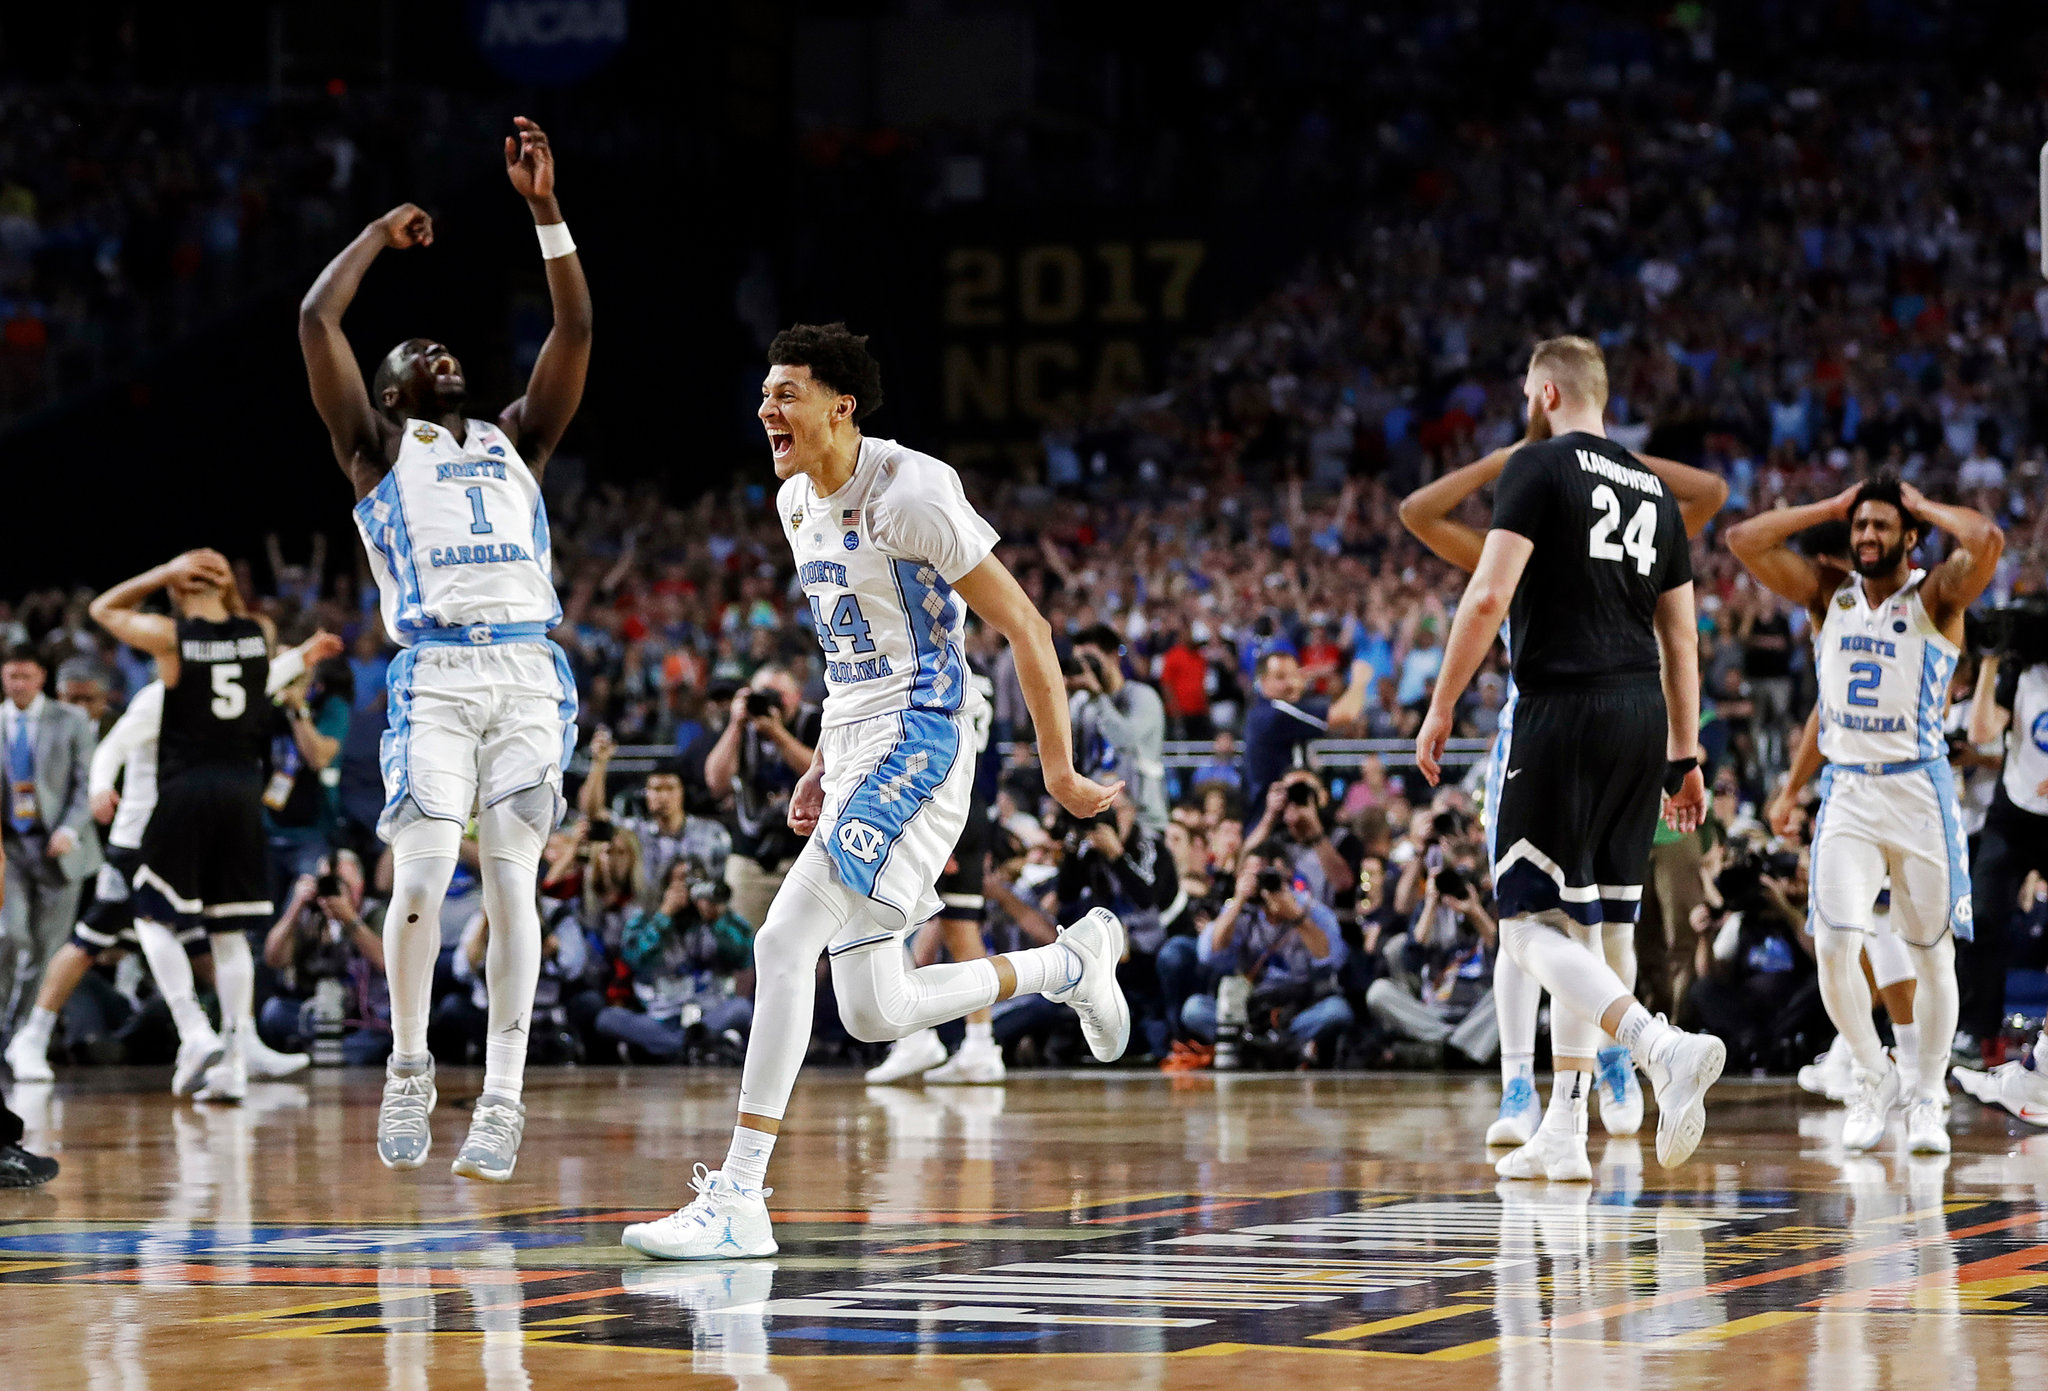 North Carolina stuffs Gonzaga to win NCAA basketball championship